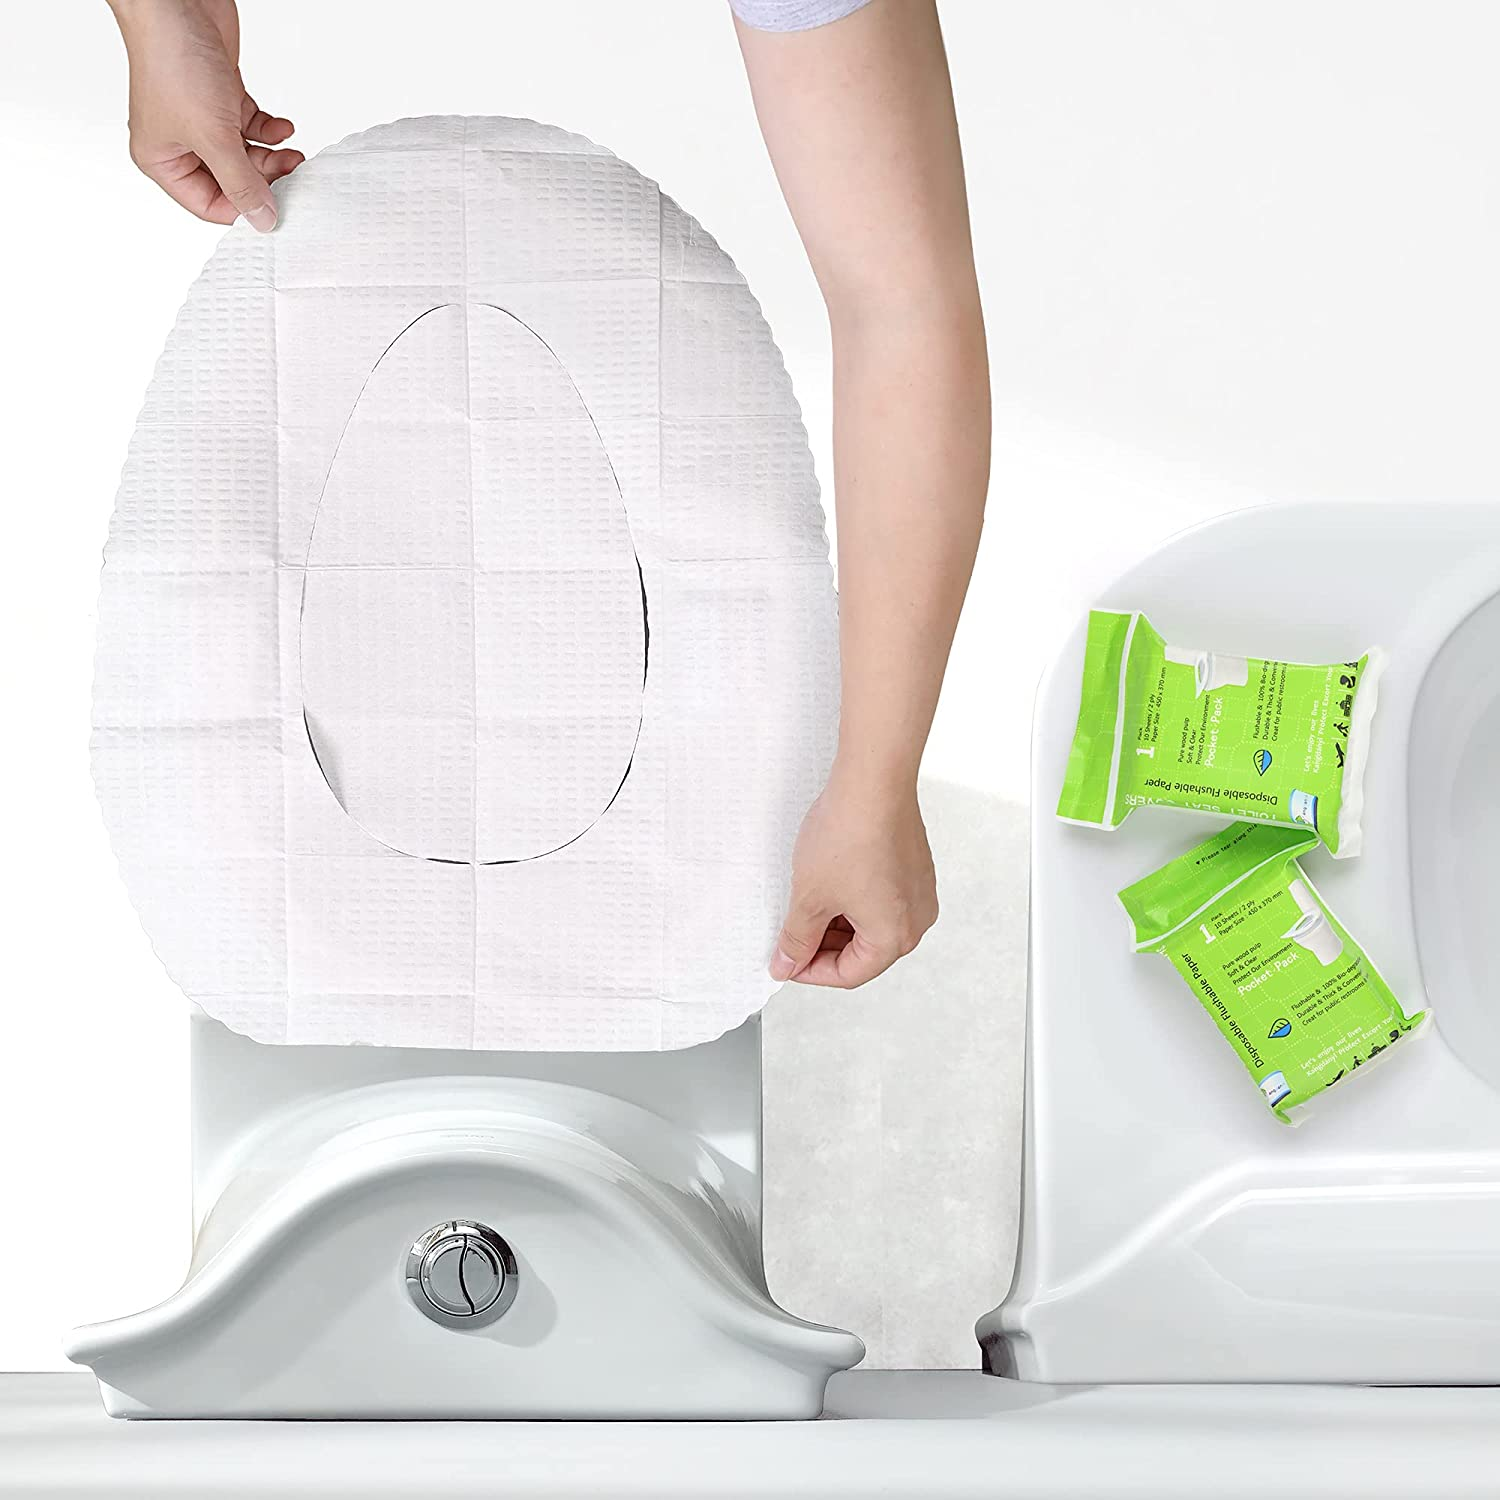 Toilet Seat Covers Paper Disposable Flushable -(100 Pack) for Adults and Kids Potty Training, 100% Biodegradable - Great for Travel, Airplane Essentials, Public Bathroom, Camping